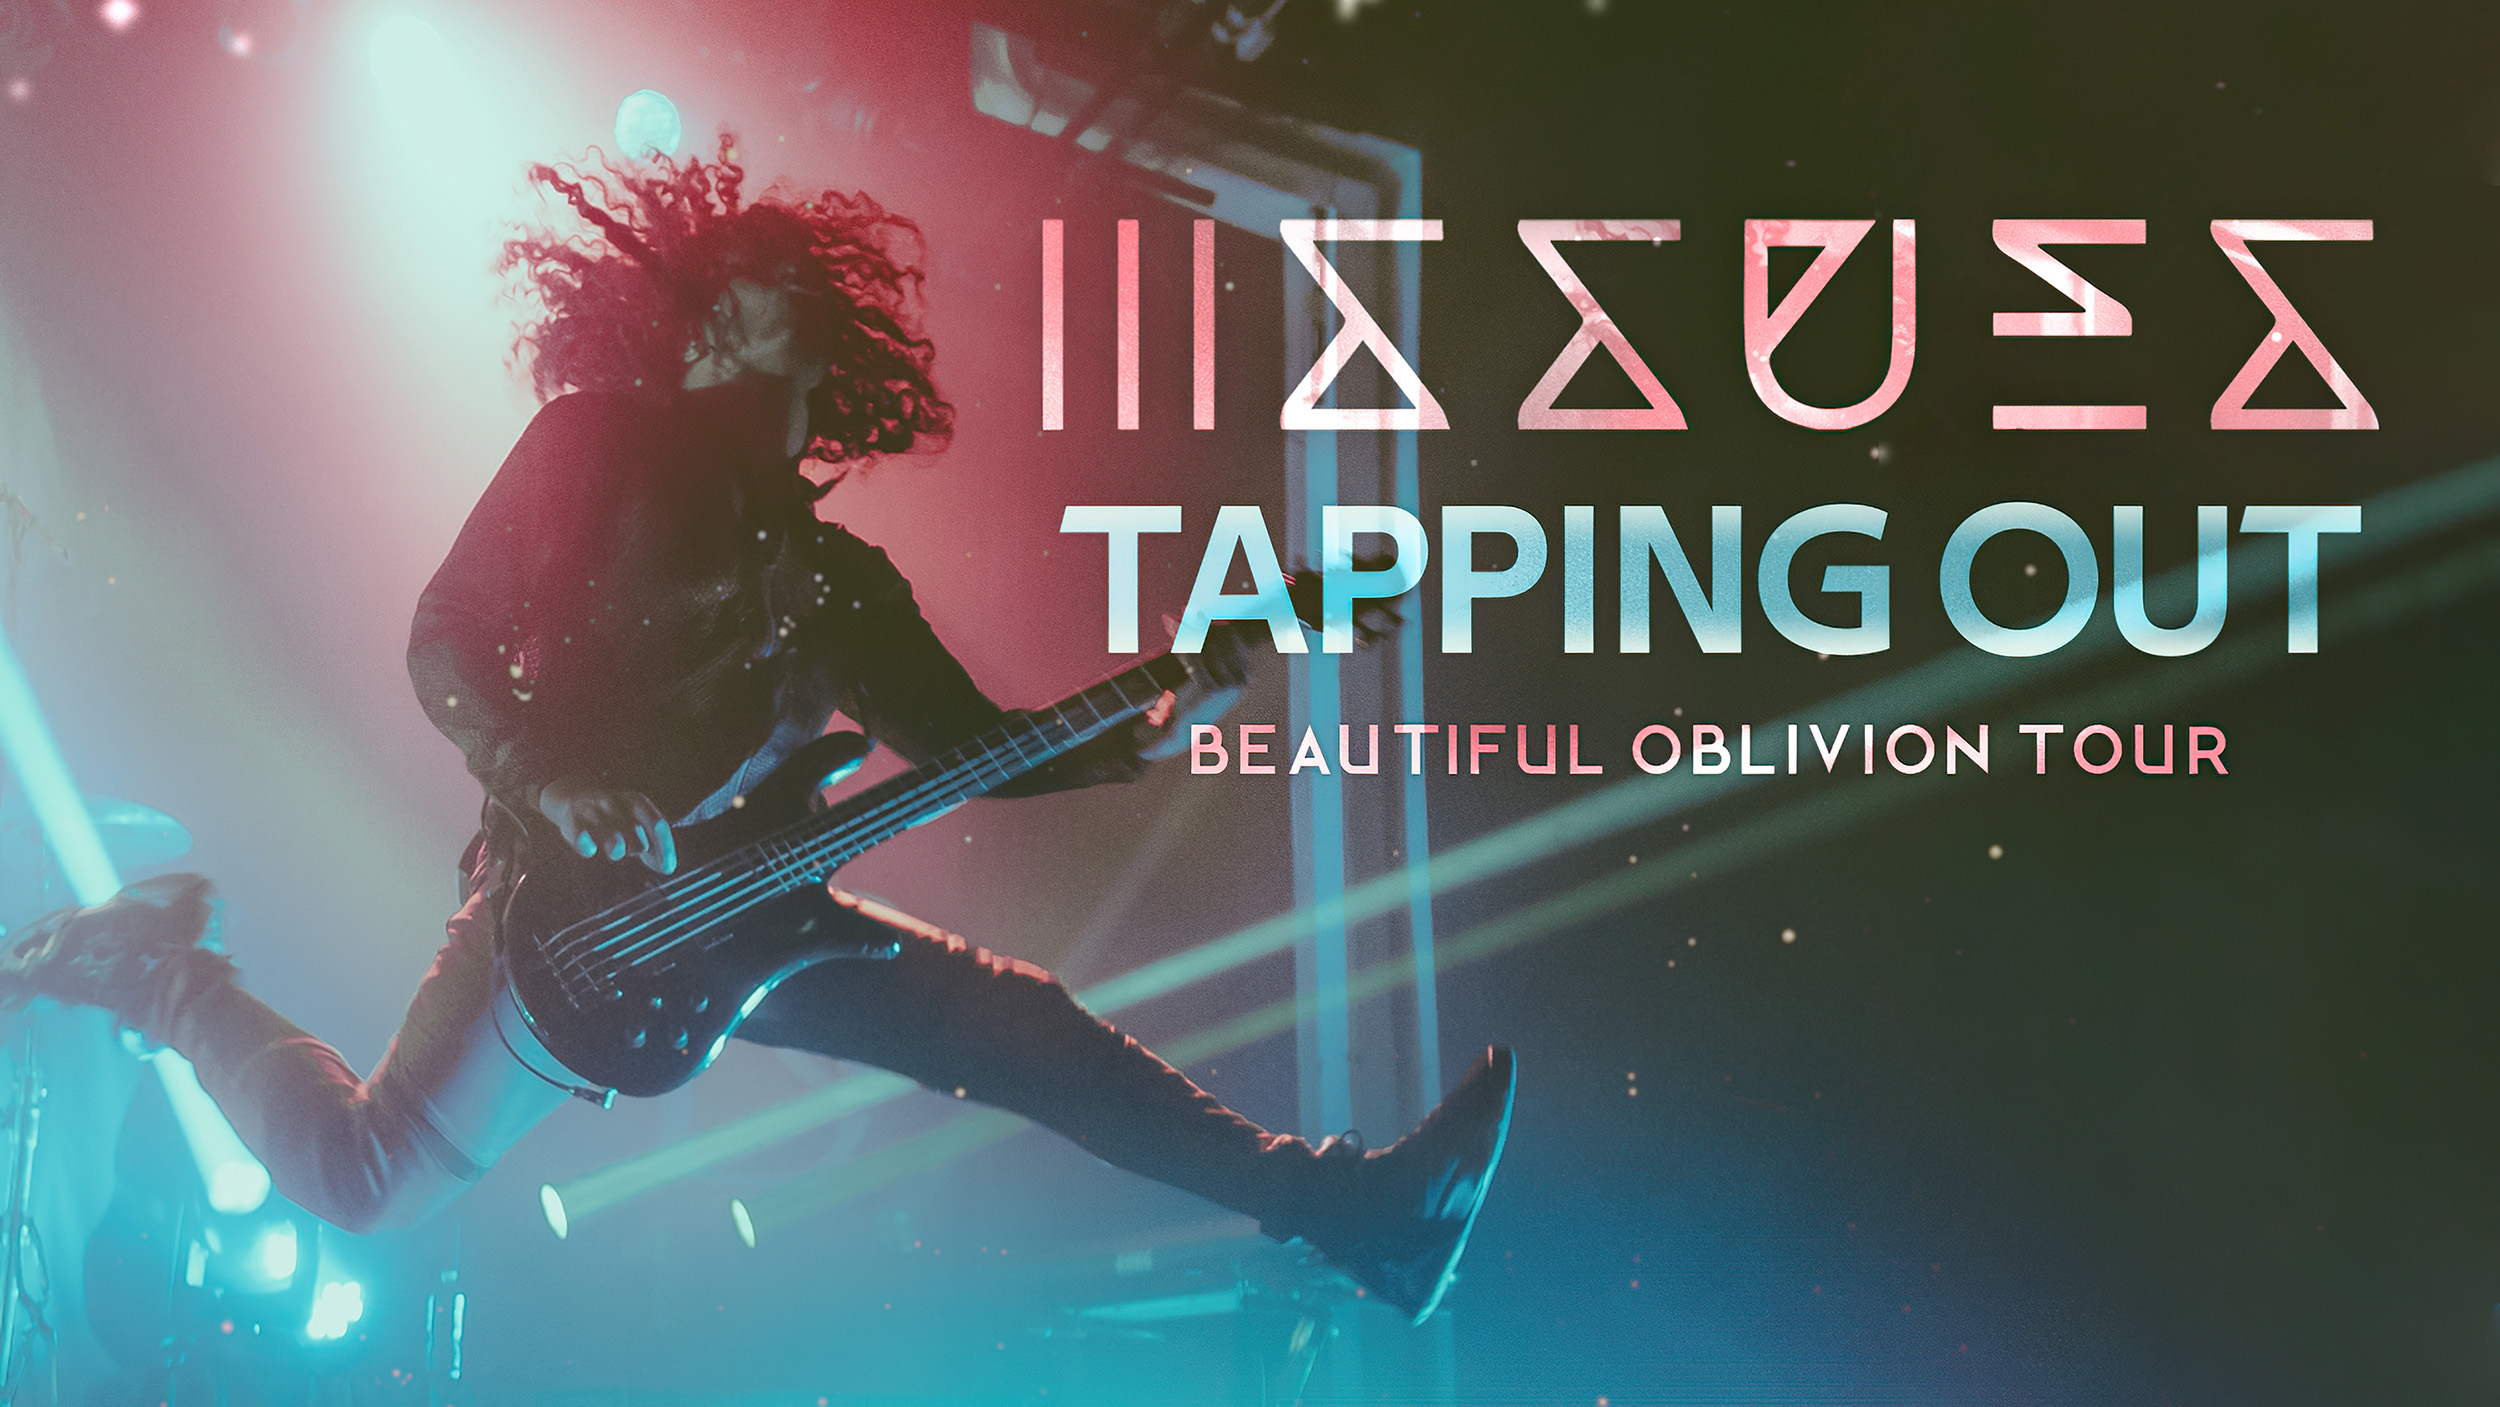 """LIVE: WATCH ISSUES PERFORM """"TAPPING OUT"""" (BEAUTIFUL OBLIVION TOUR)"""